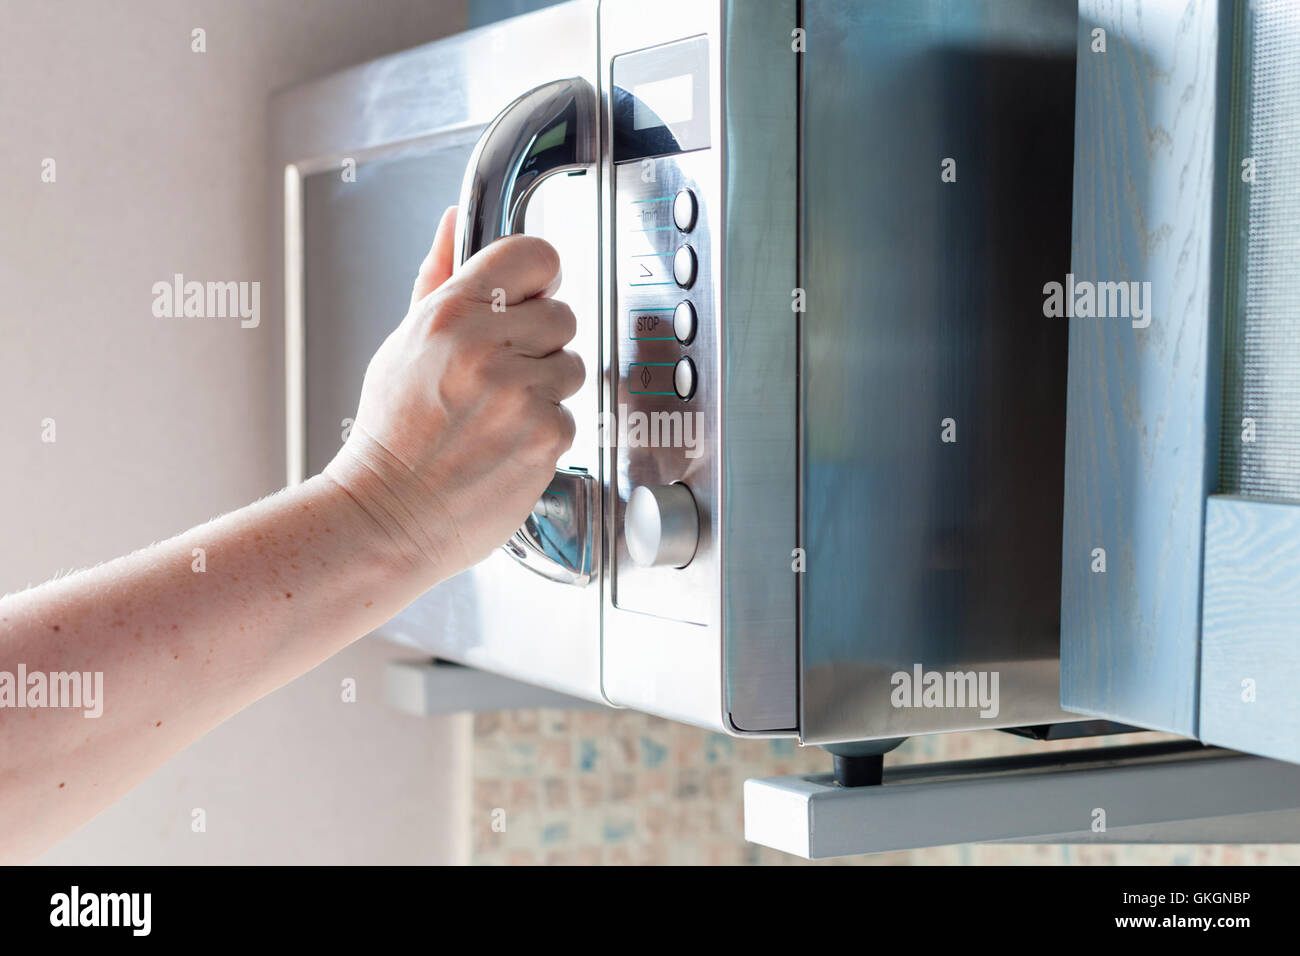 hand closes door of microwave oven for cooking food - Stock Image